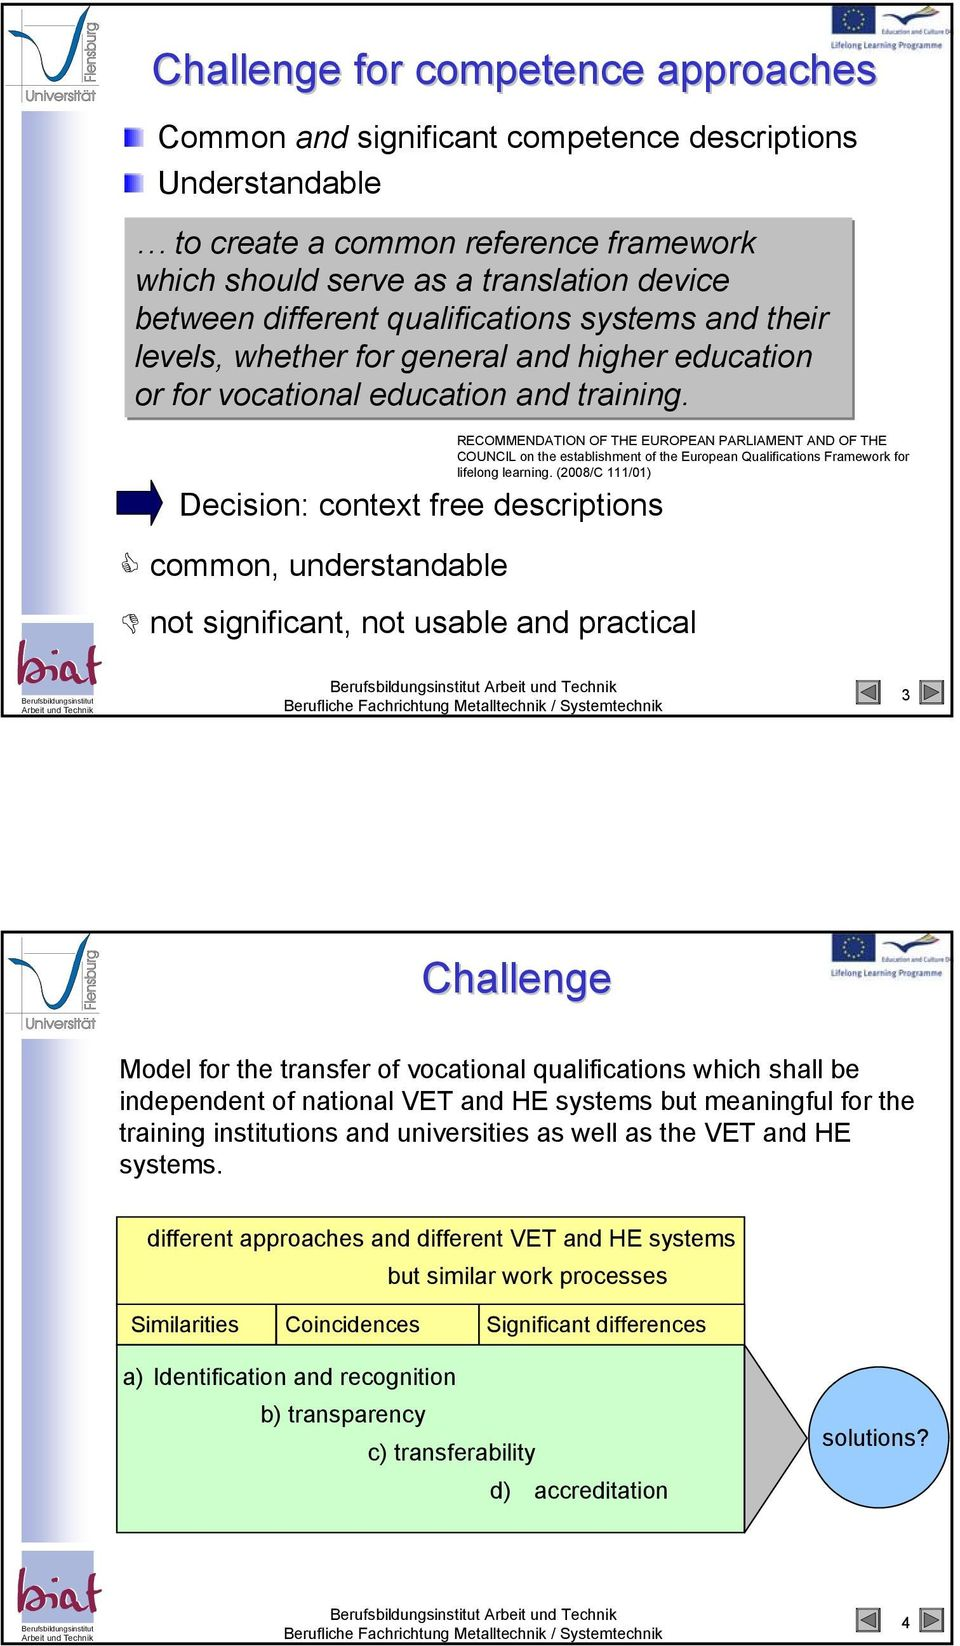 RECOMMENDATION OF THE EUROPEAN PARLIAMENT AND OF THE COUNCIL on the establishment of the European Qualifications Framework for lifelong learning.